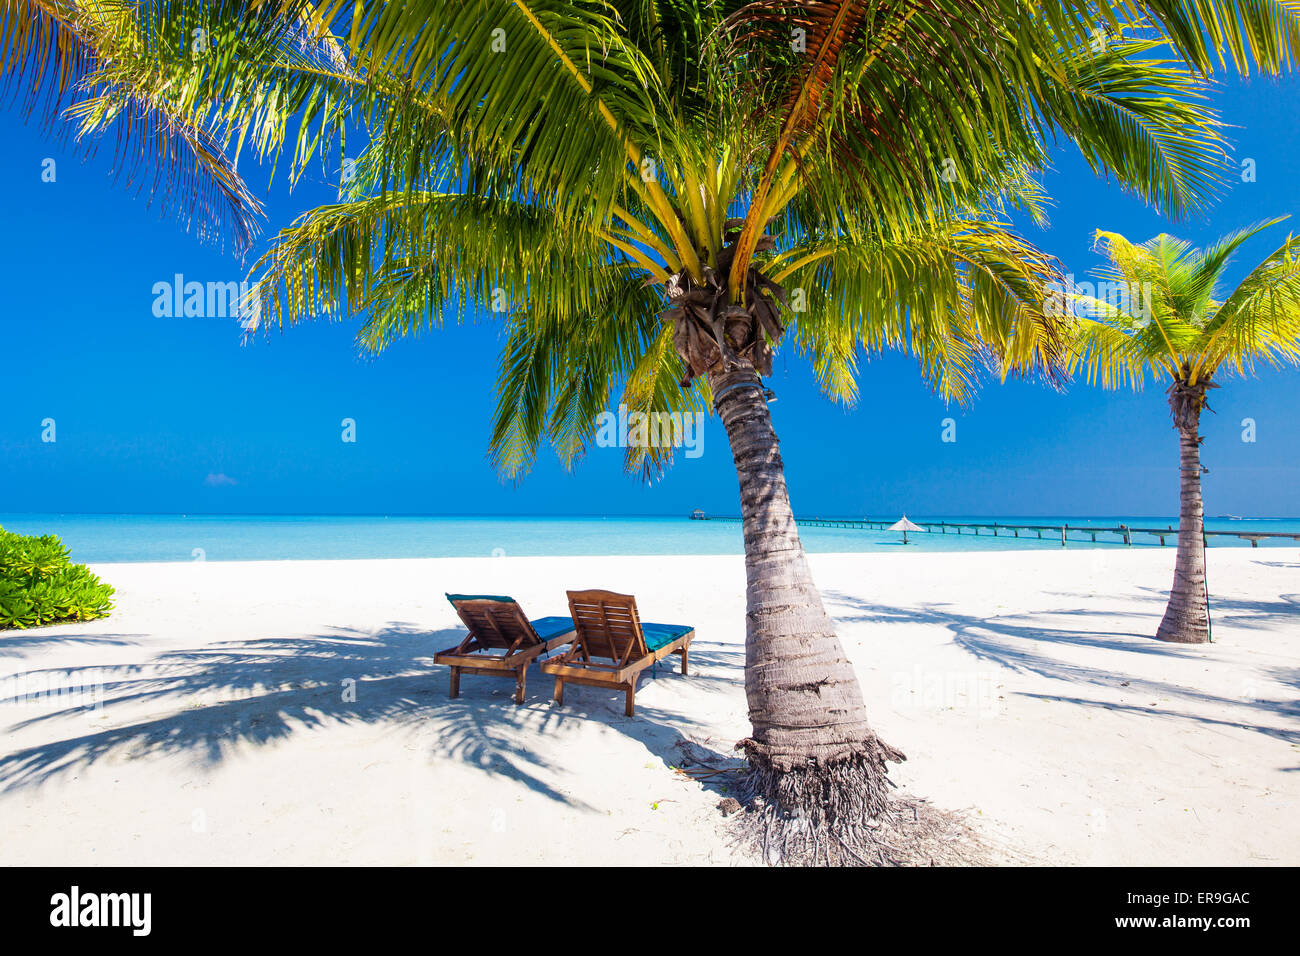 Deck chairs under umrellas and palm trees on a tropical beach - Stock Image